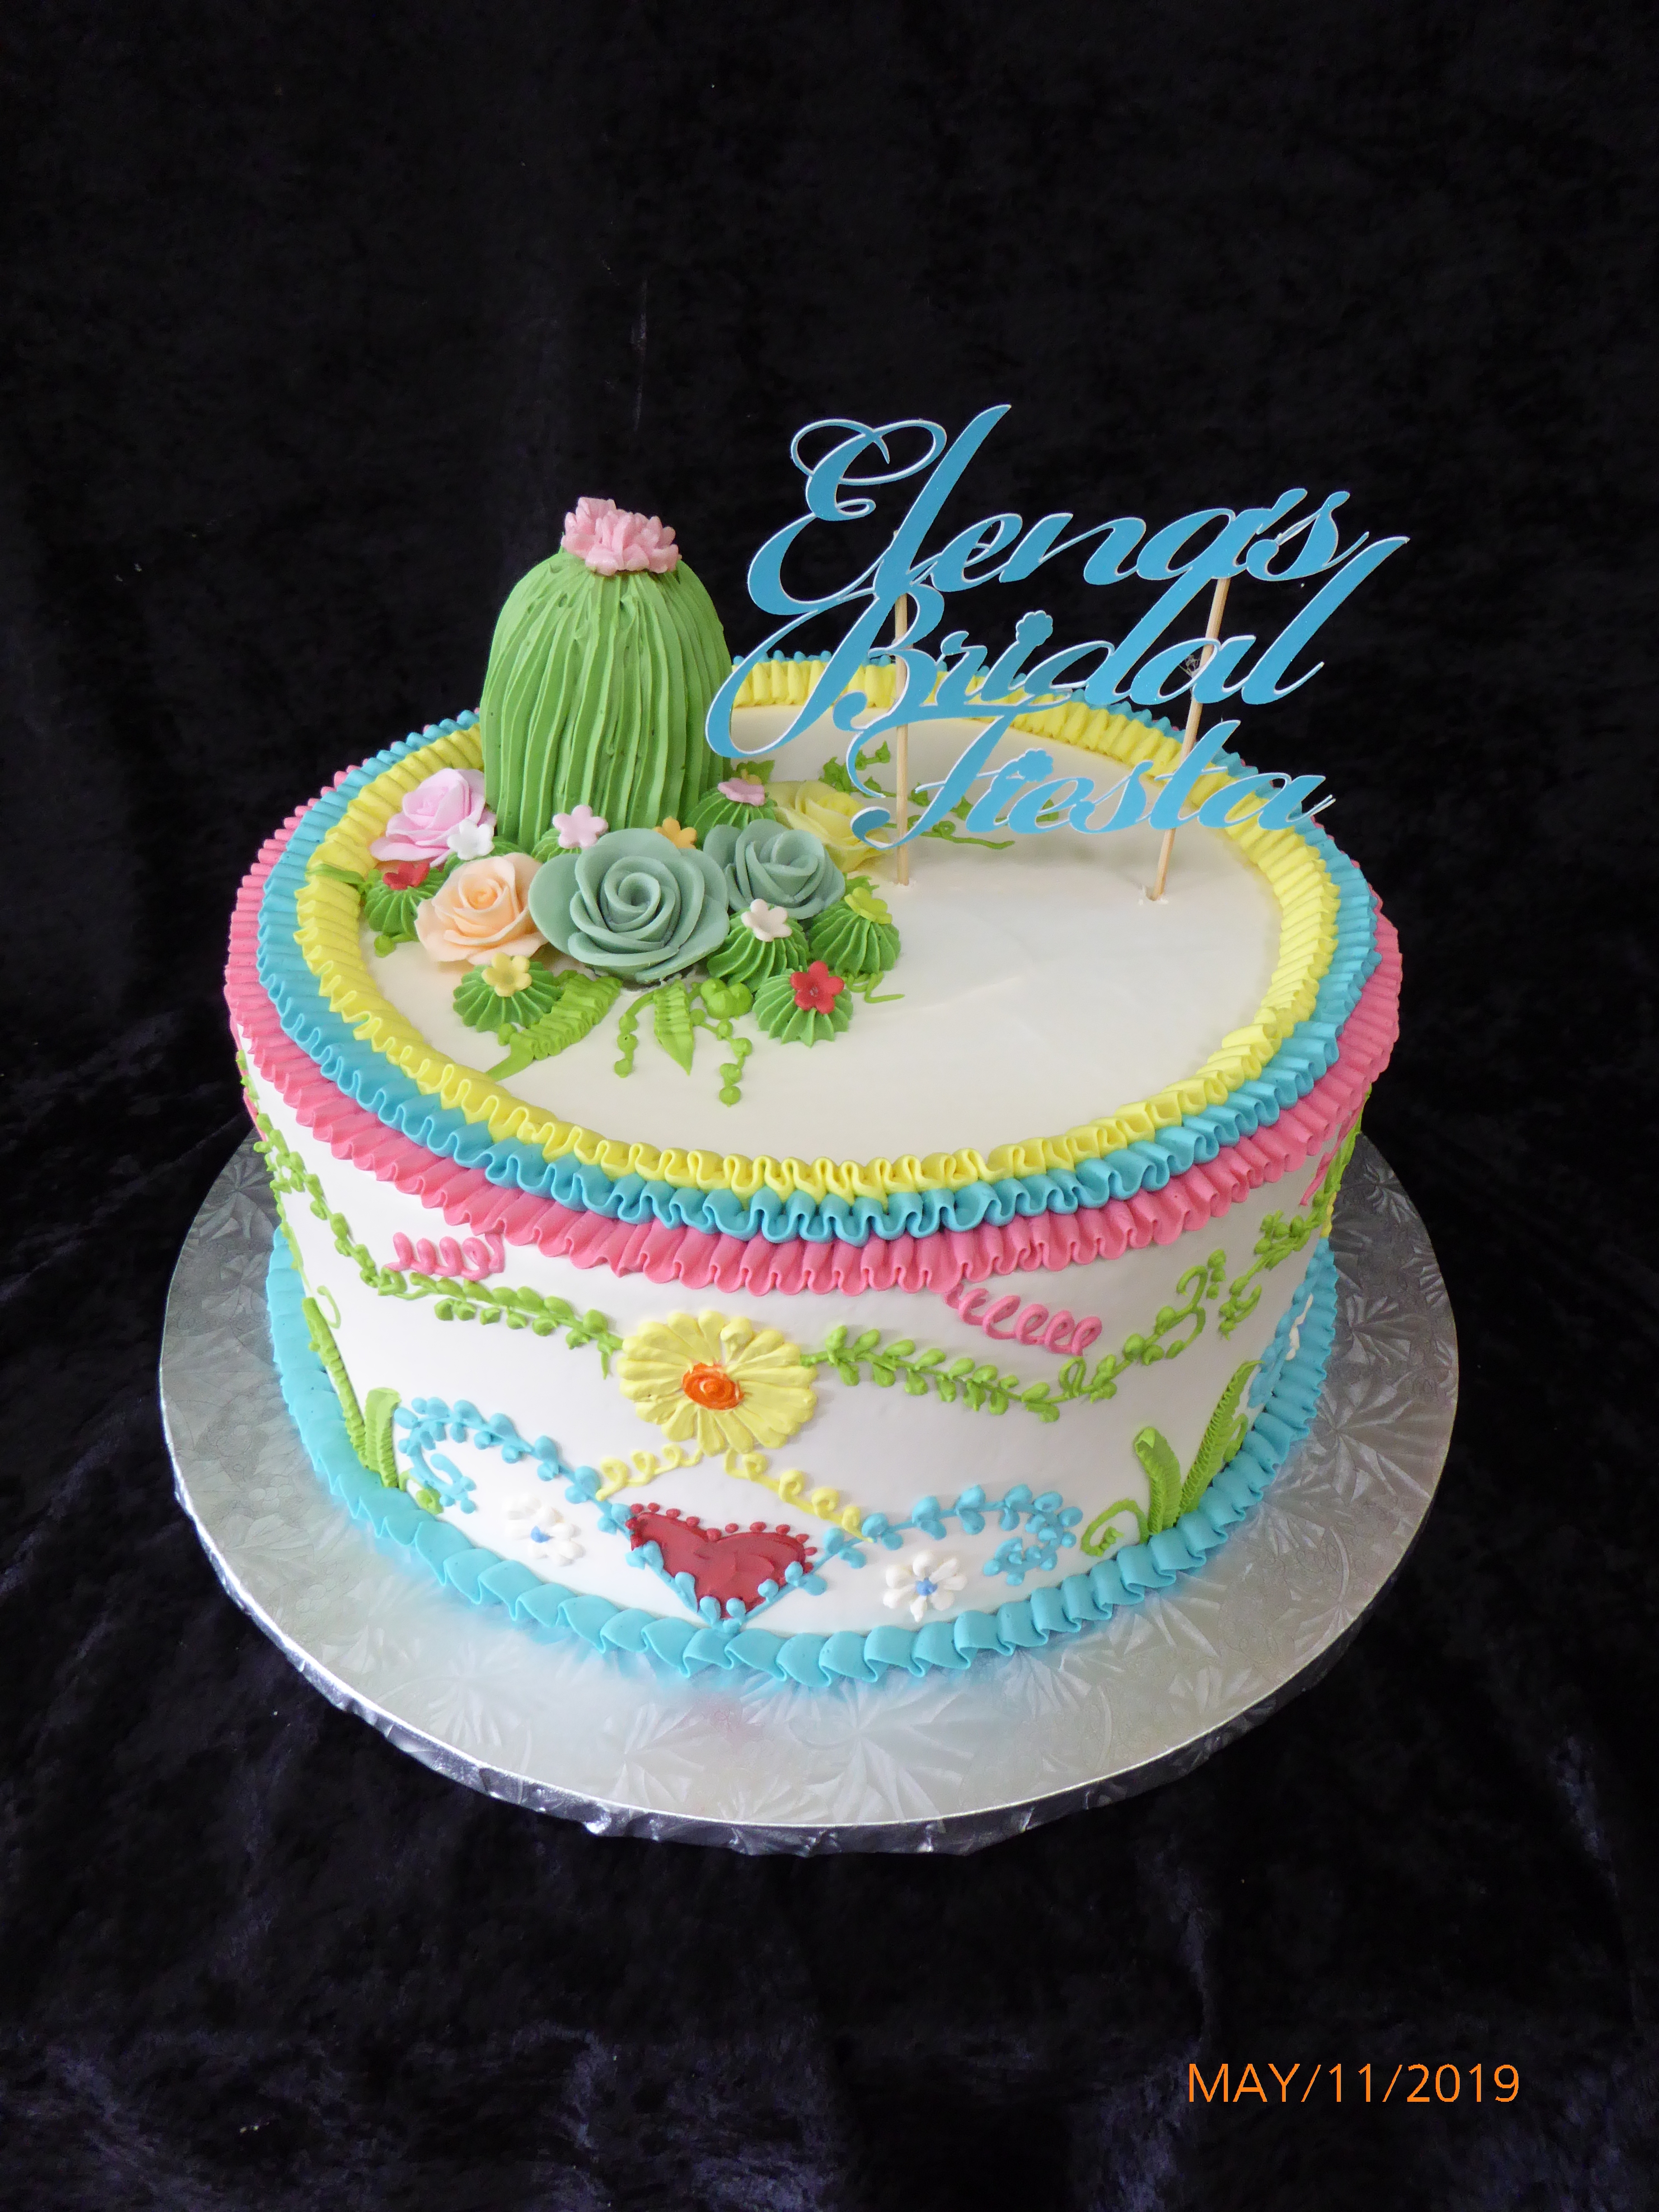 3359, bridal shower, embroidery, fiesta, yucatan, pink, green, blue, yellow, cactus, flower, flowers, heart, hearts